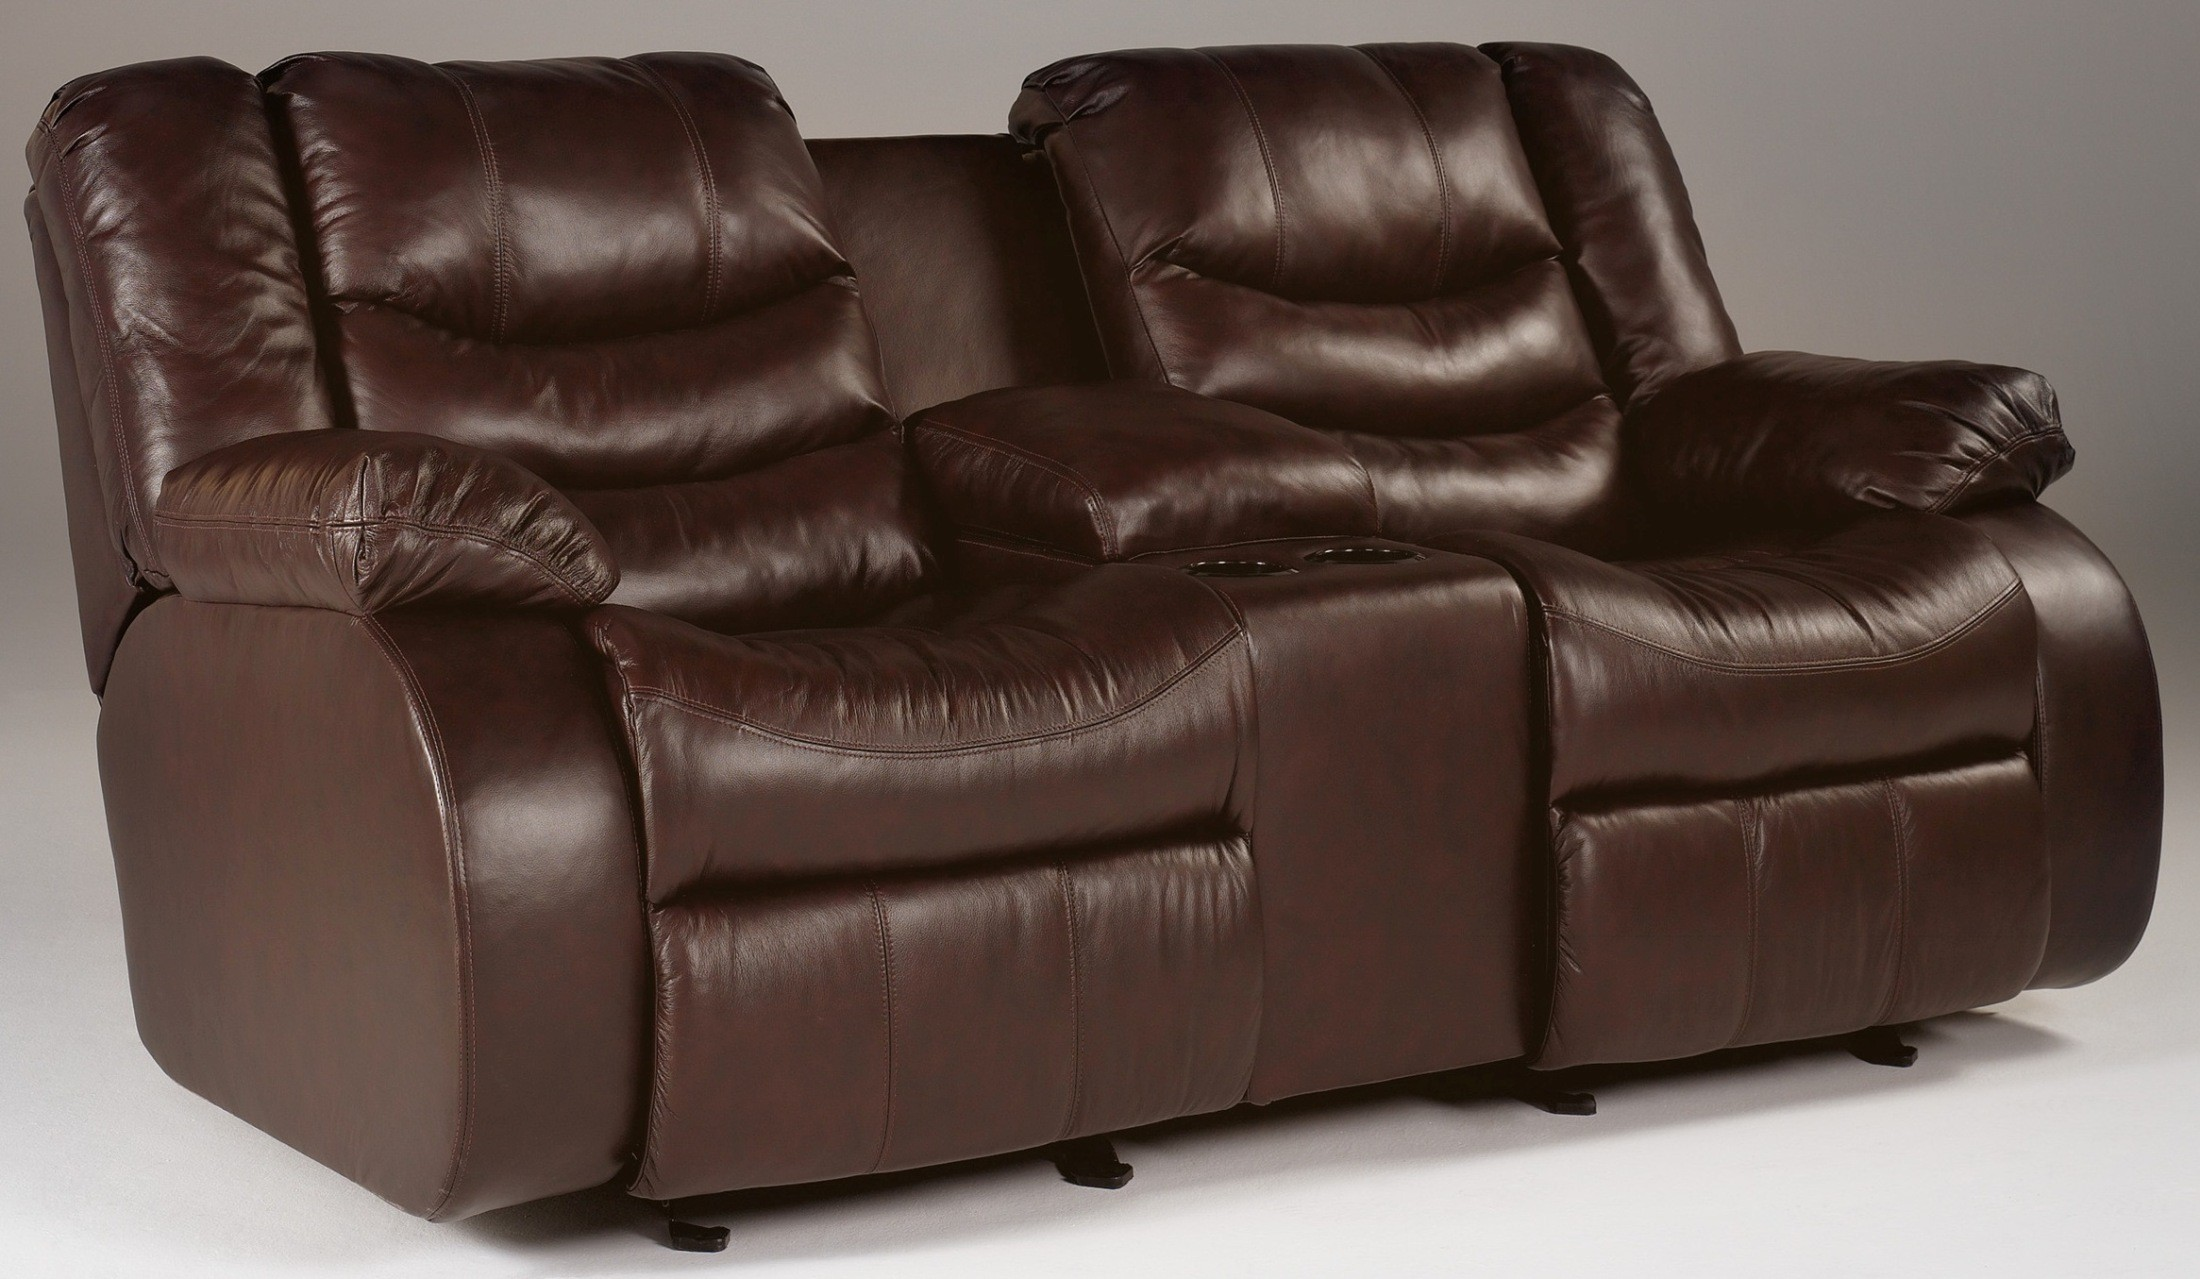 Ashley Revolution Burgundy Double Power Reclining Loveseat With Console